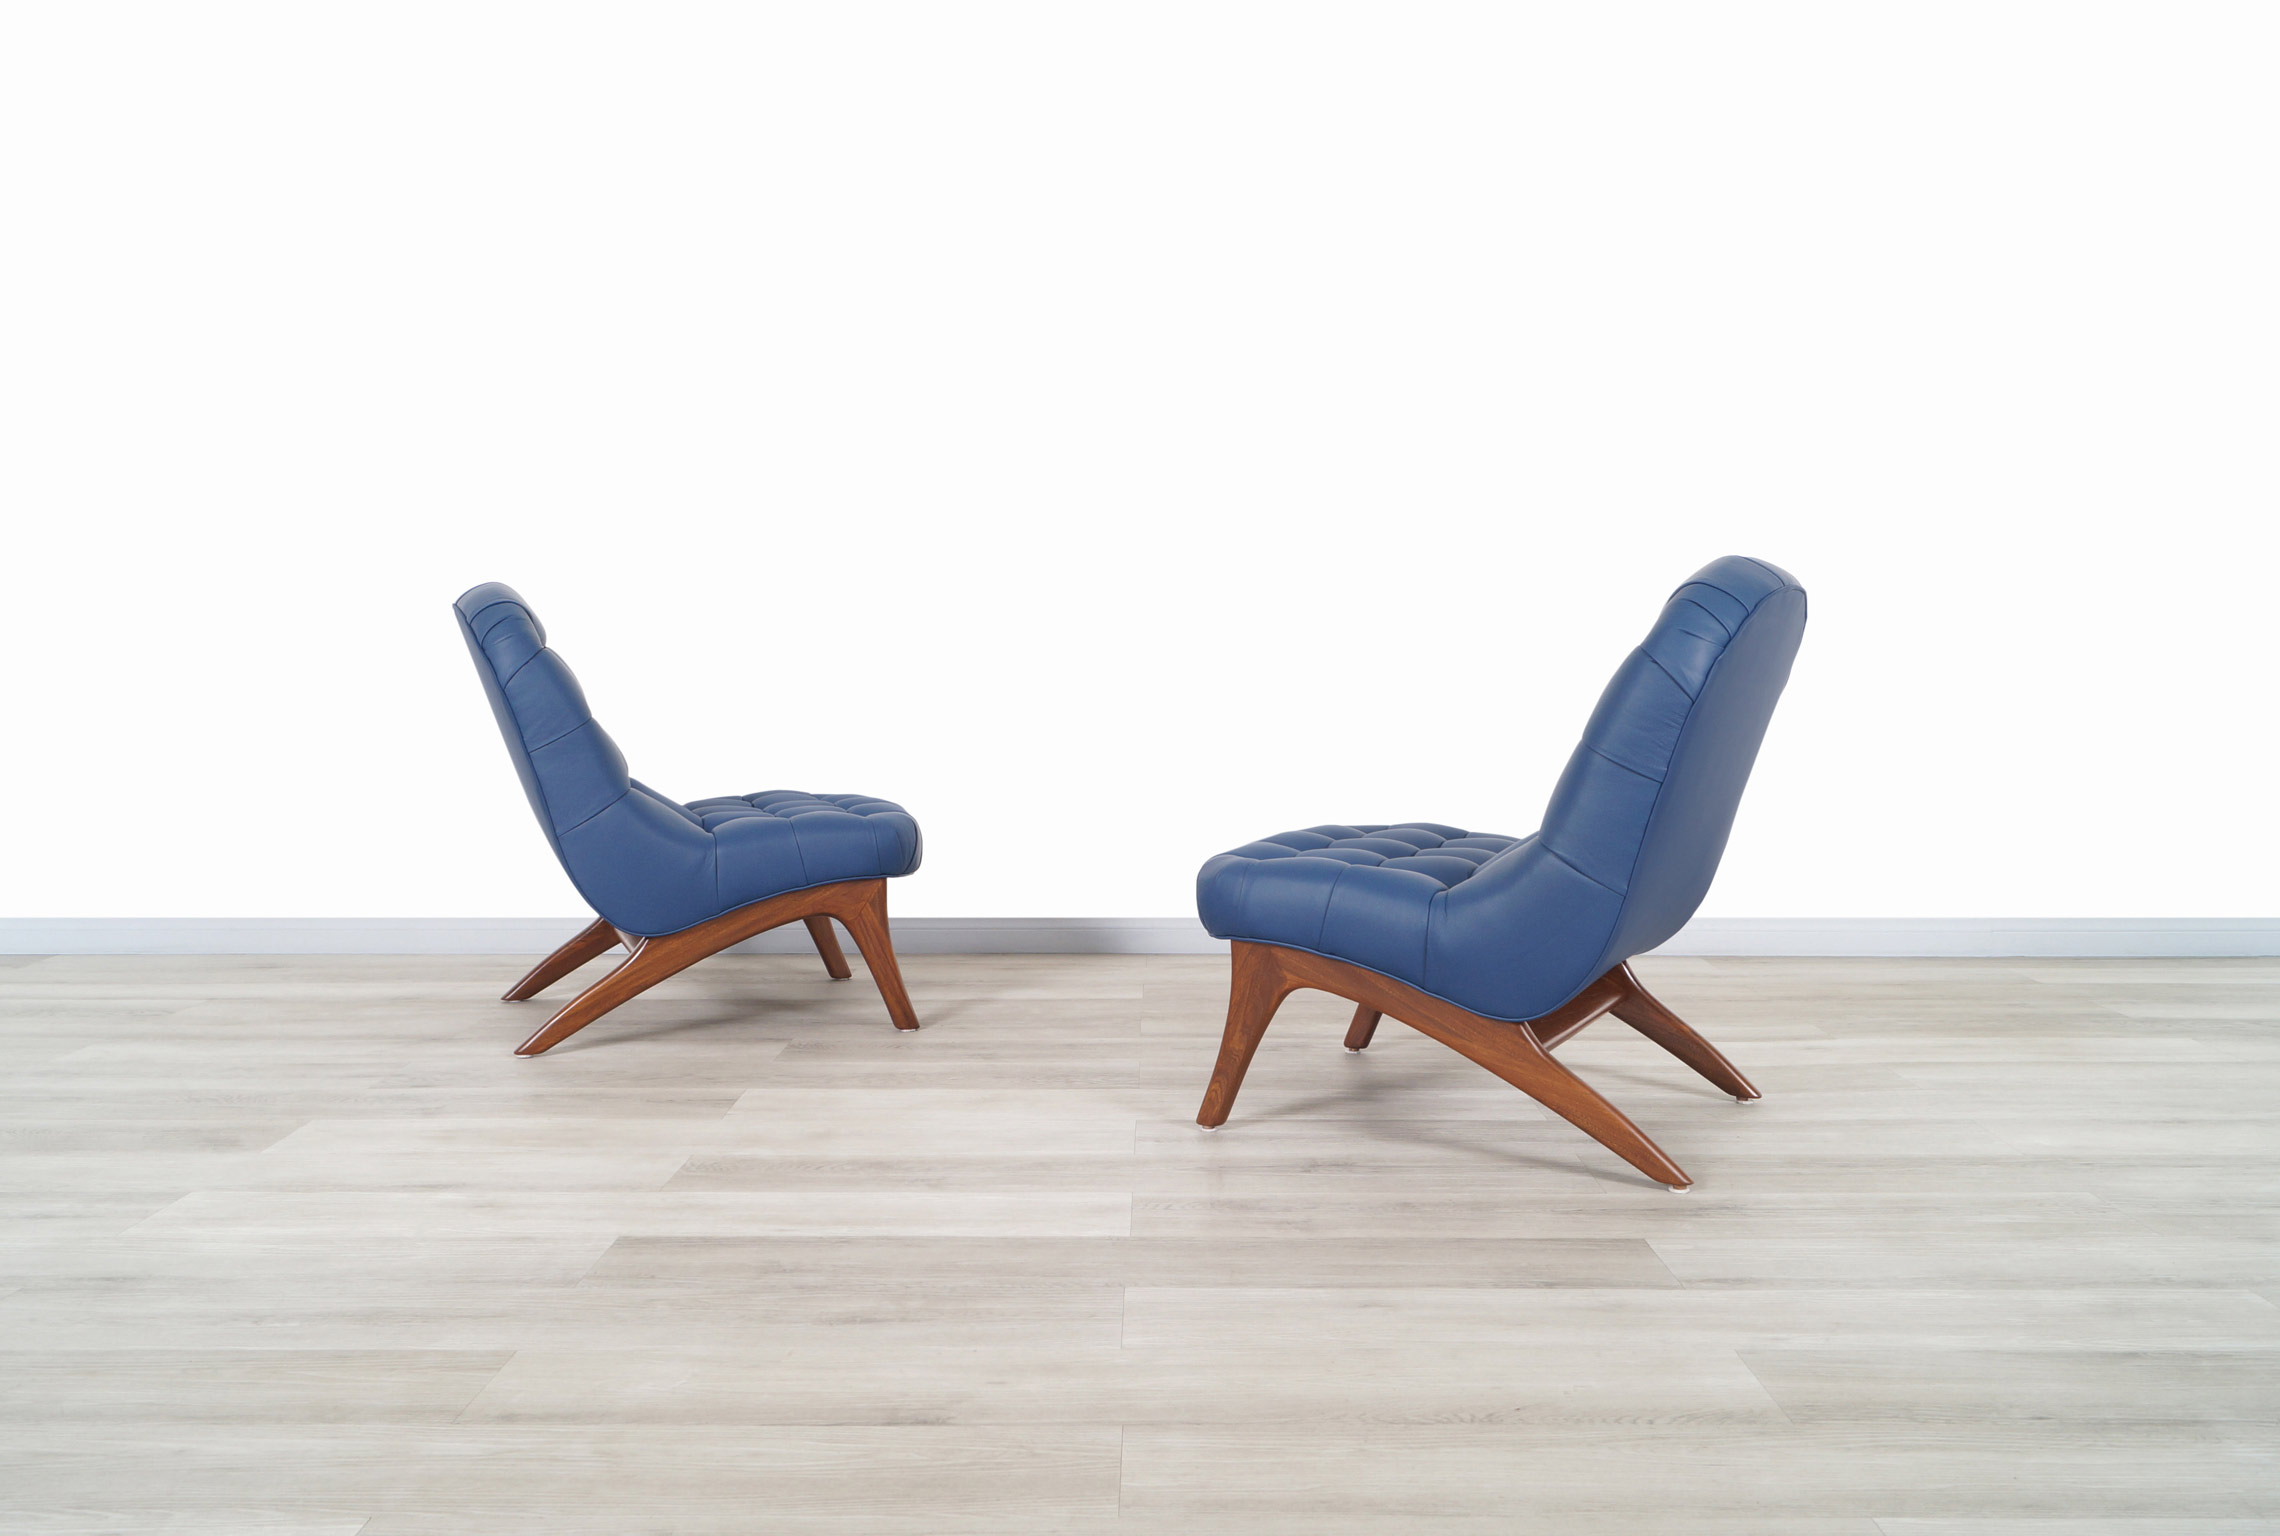 Vintage Leather Tufted Slipper Chairs Attributed to Adrian Pearsall